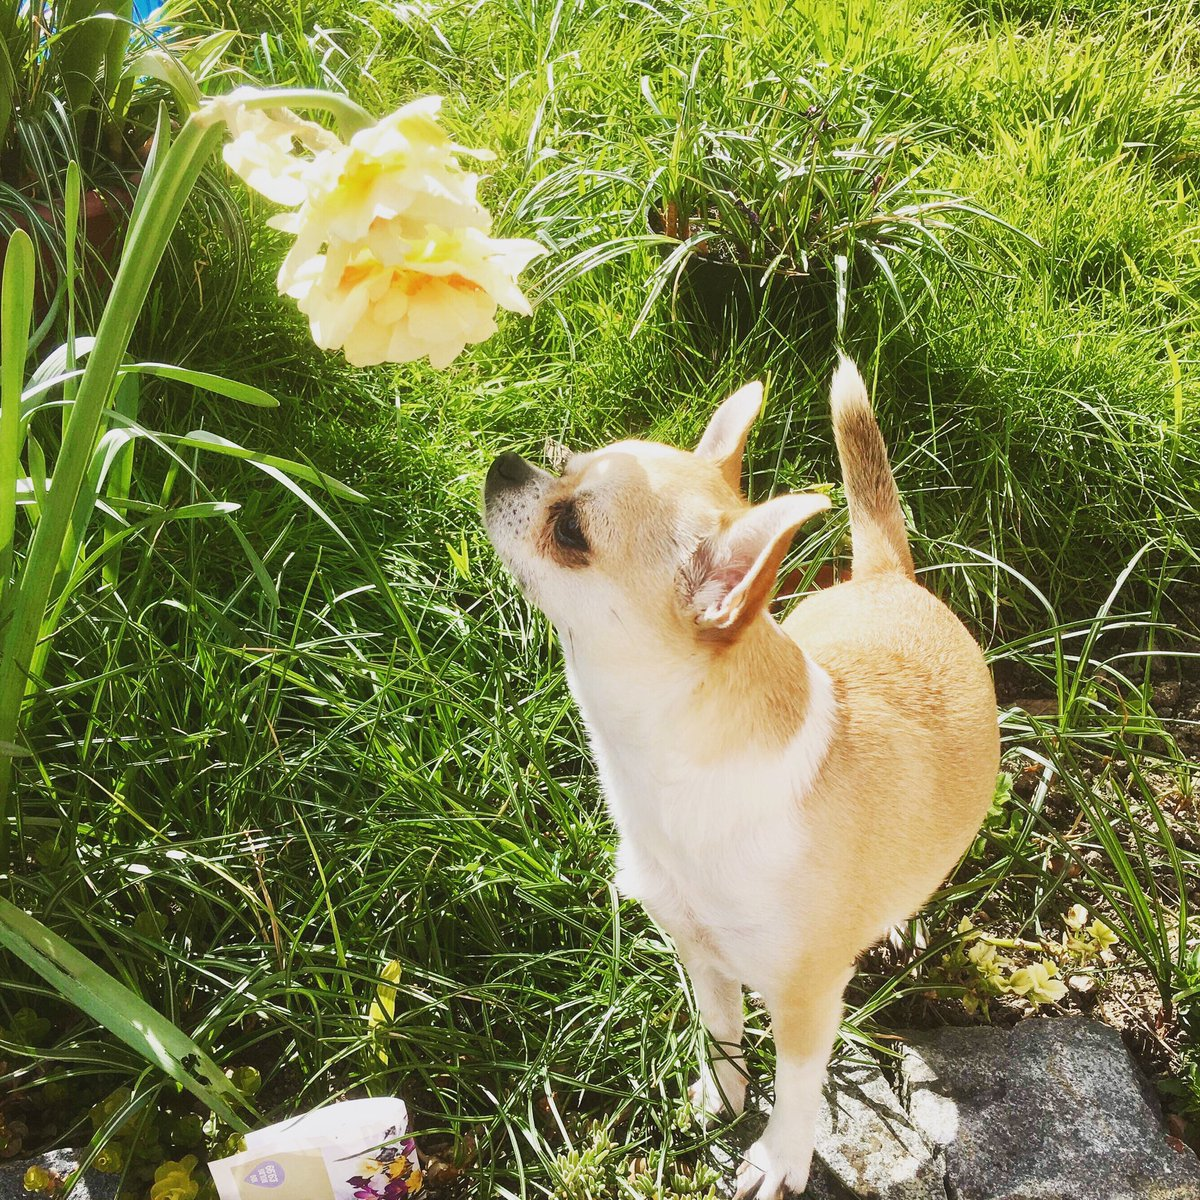 Happy #nationalloveyourpetday - this is my beautiful furbaby Jesse #chihuahuasofinsta #chihuahua #chihuahuasofinstagram #furbaby #girlsbestfriend#chihuahuas #lovemychihuahua #happiness #dogsarelifepic.twitter.com/Ujj7lTbGTe